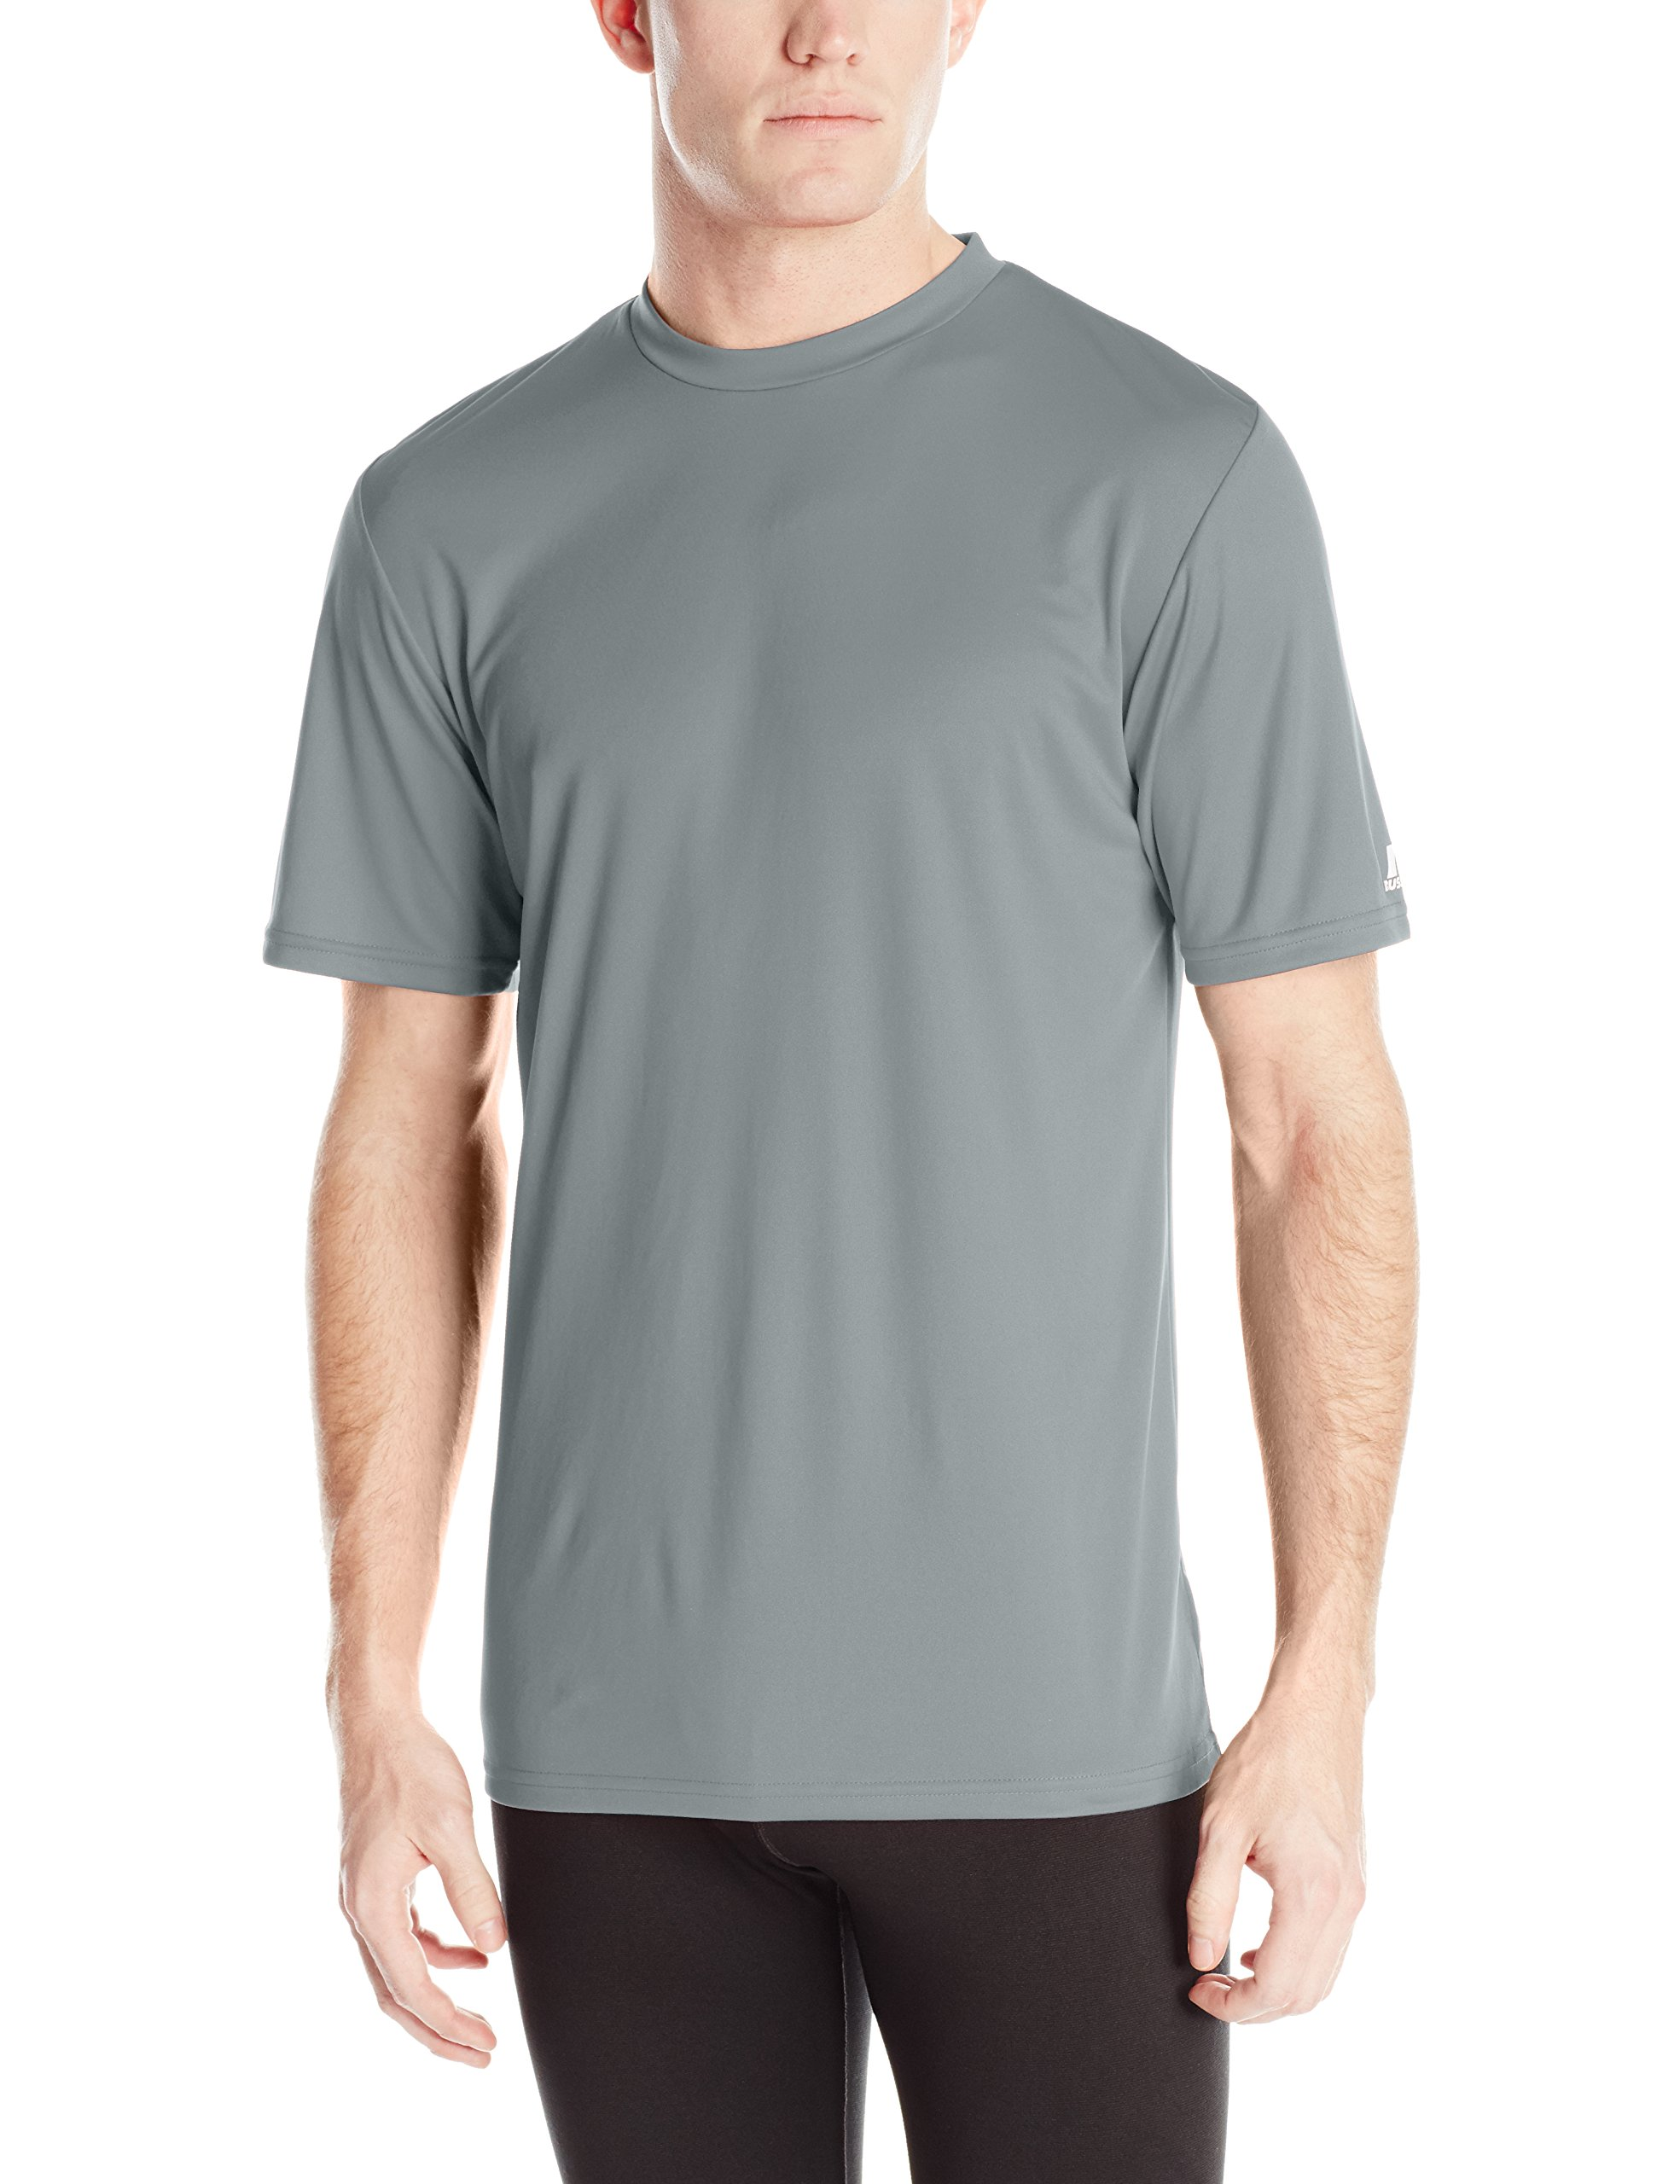 Russell Athletic Men's Performance T-Shirt, Steel, Medium by Russell Athletic